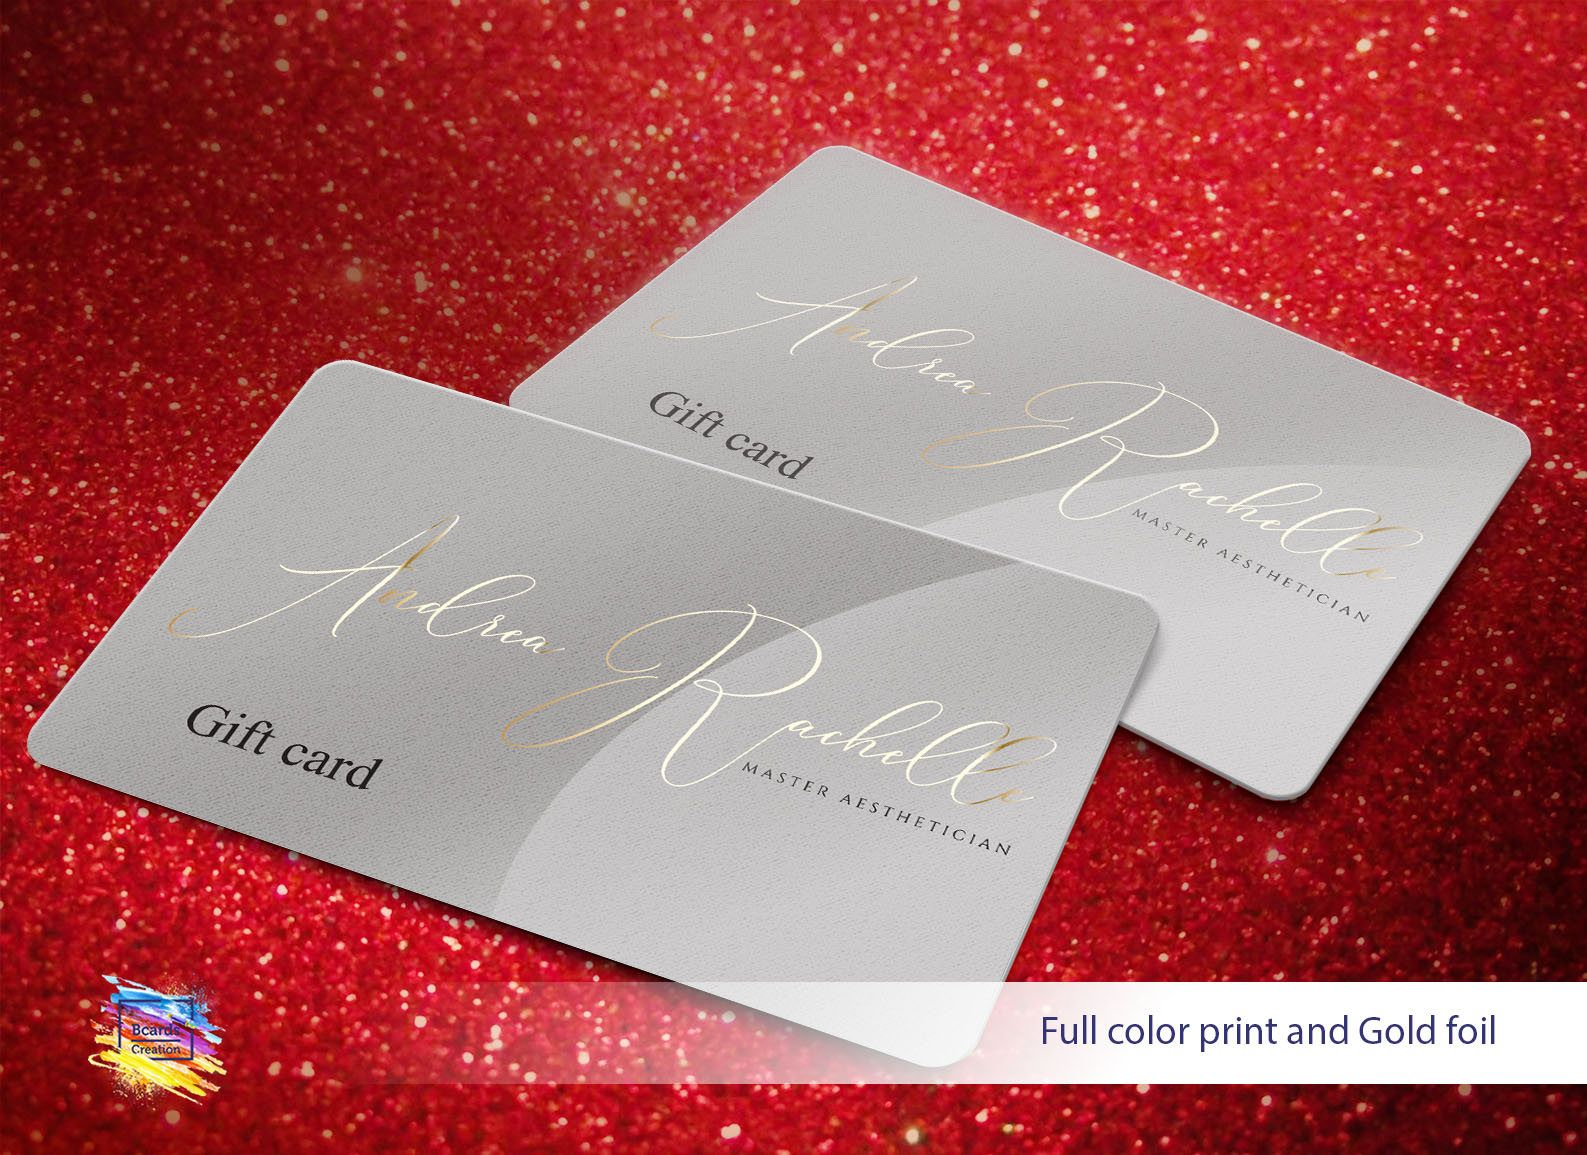 100 pvc plastic business card silver shimmer dust background 100 pvc plastic business card silver shimmer dust background plastic wwo real gold silver holographic foil stamping gift cards pc08 colourmoves Images